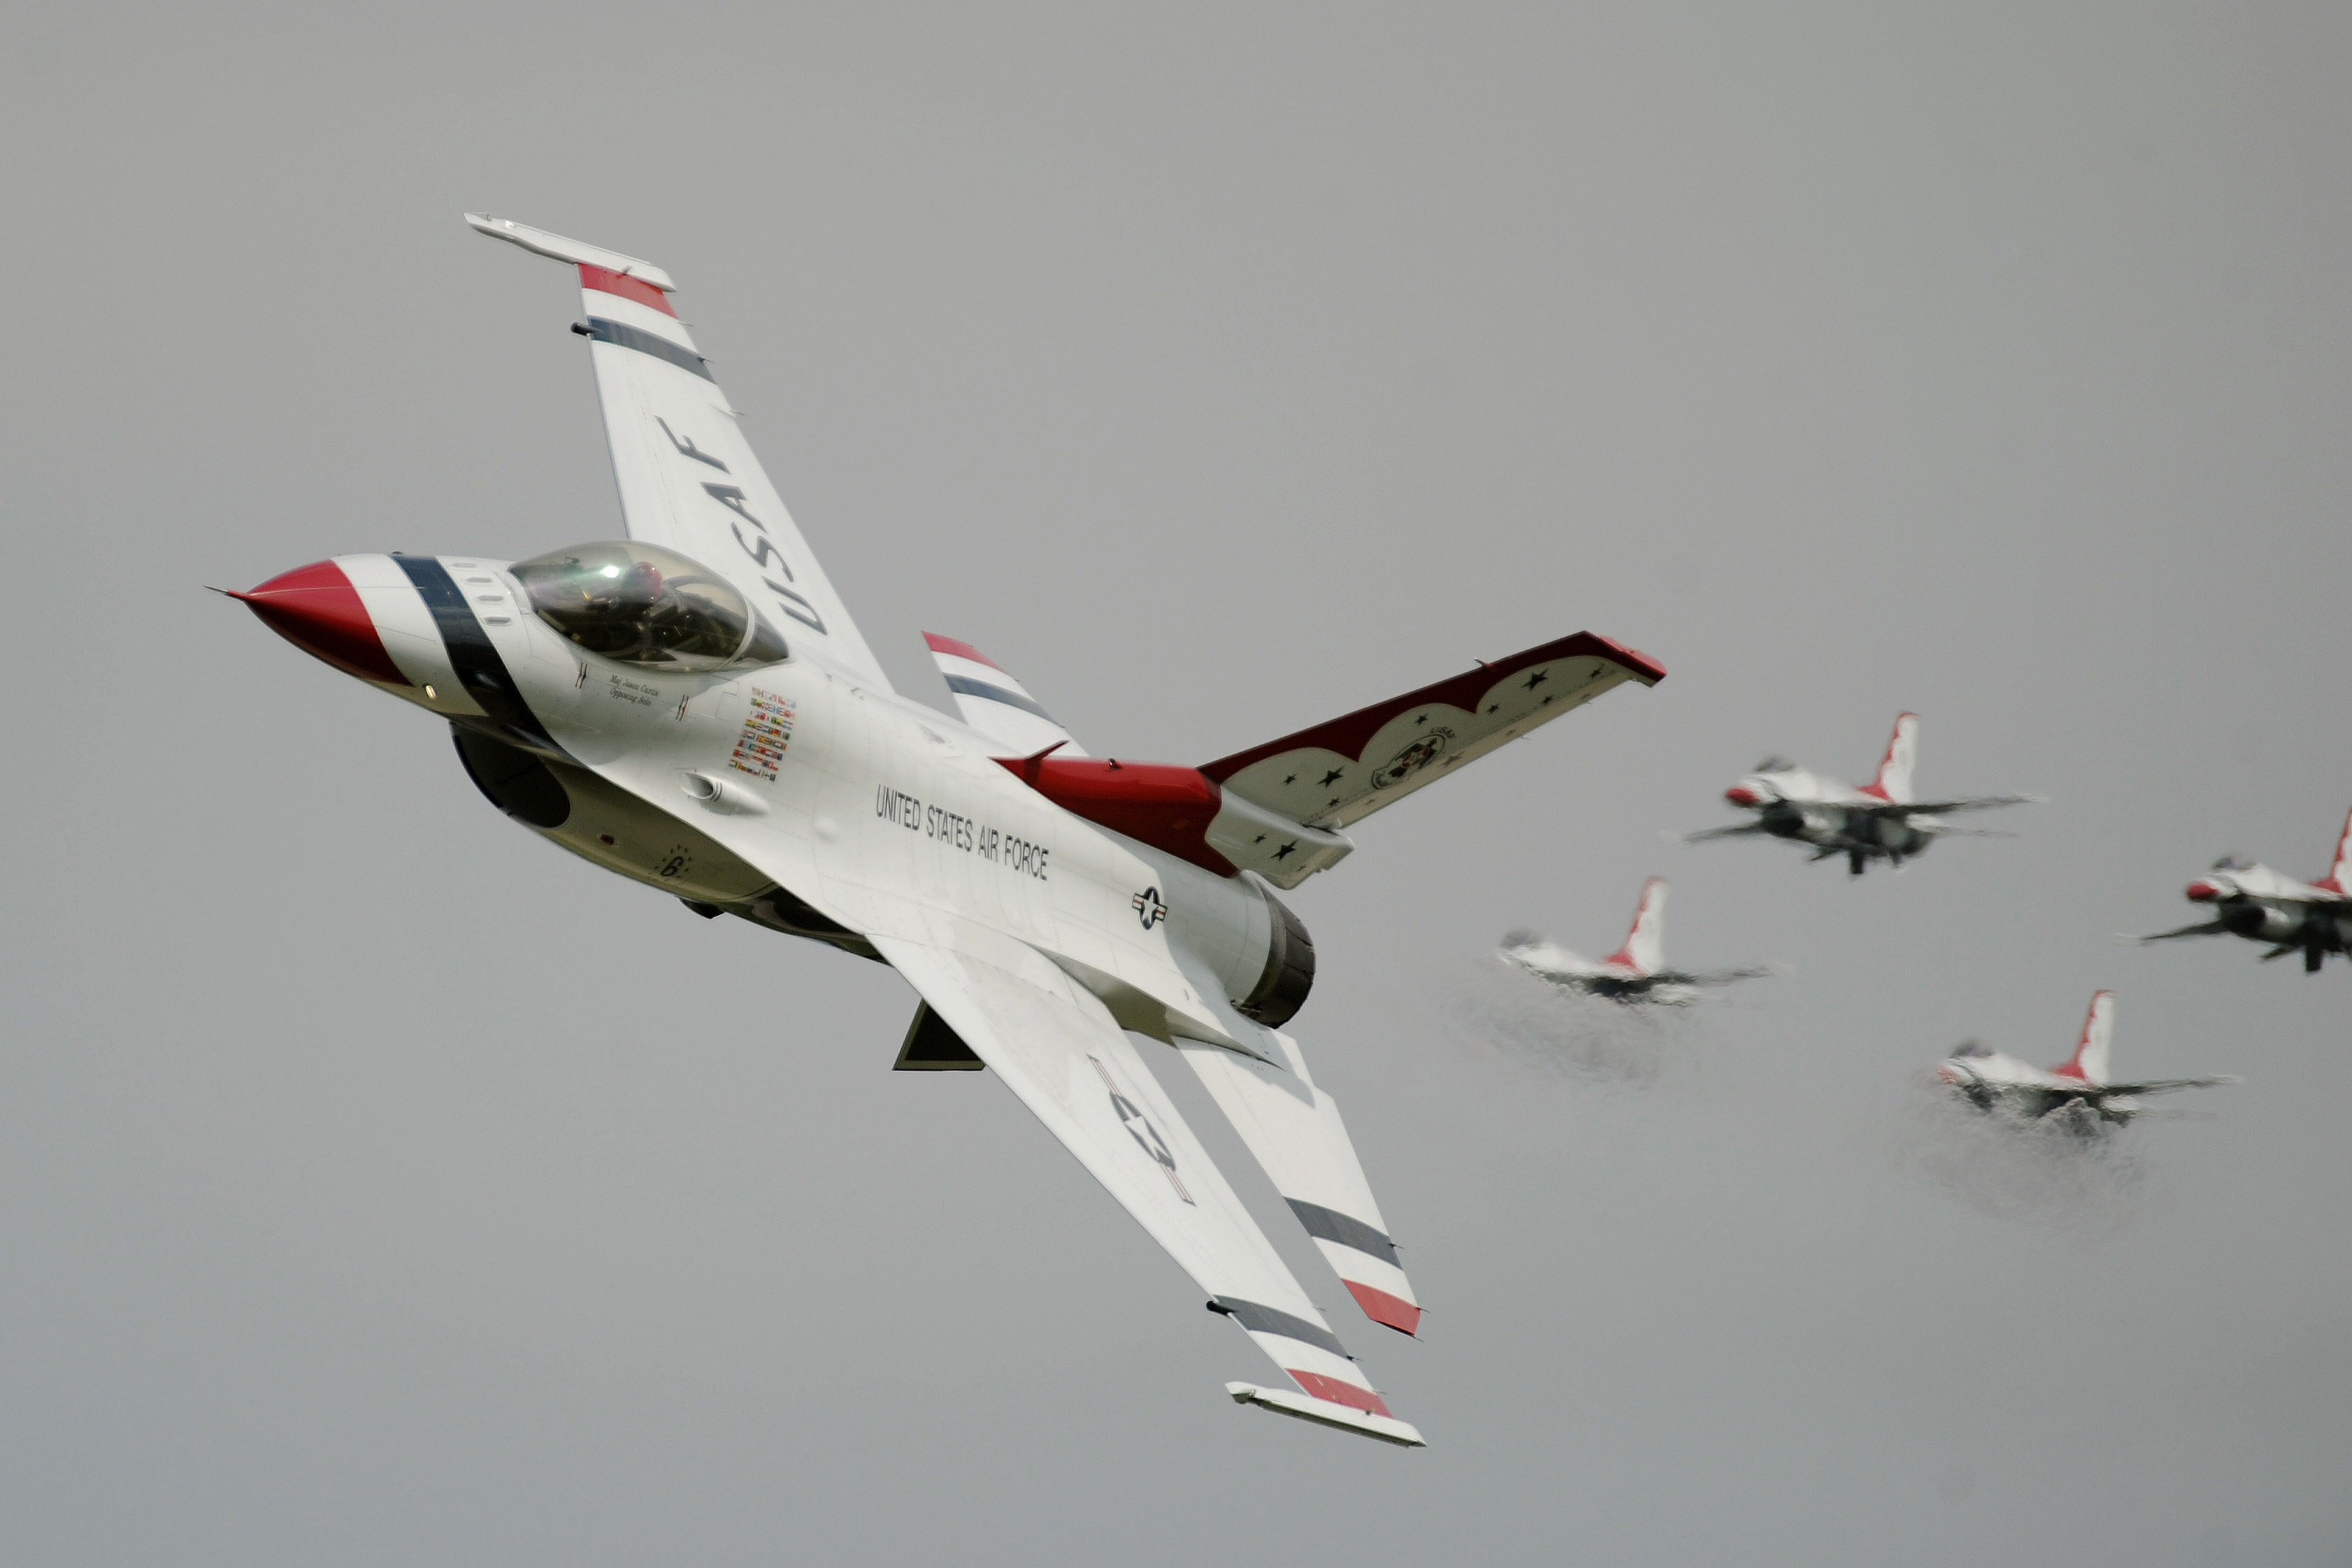 Thunderbirds planes flyover, will be with Blue Angels